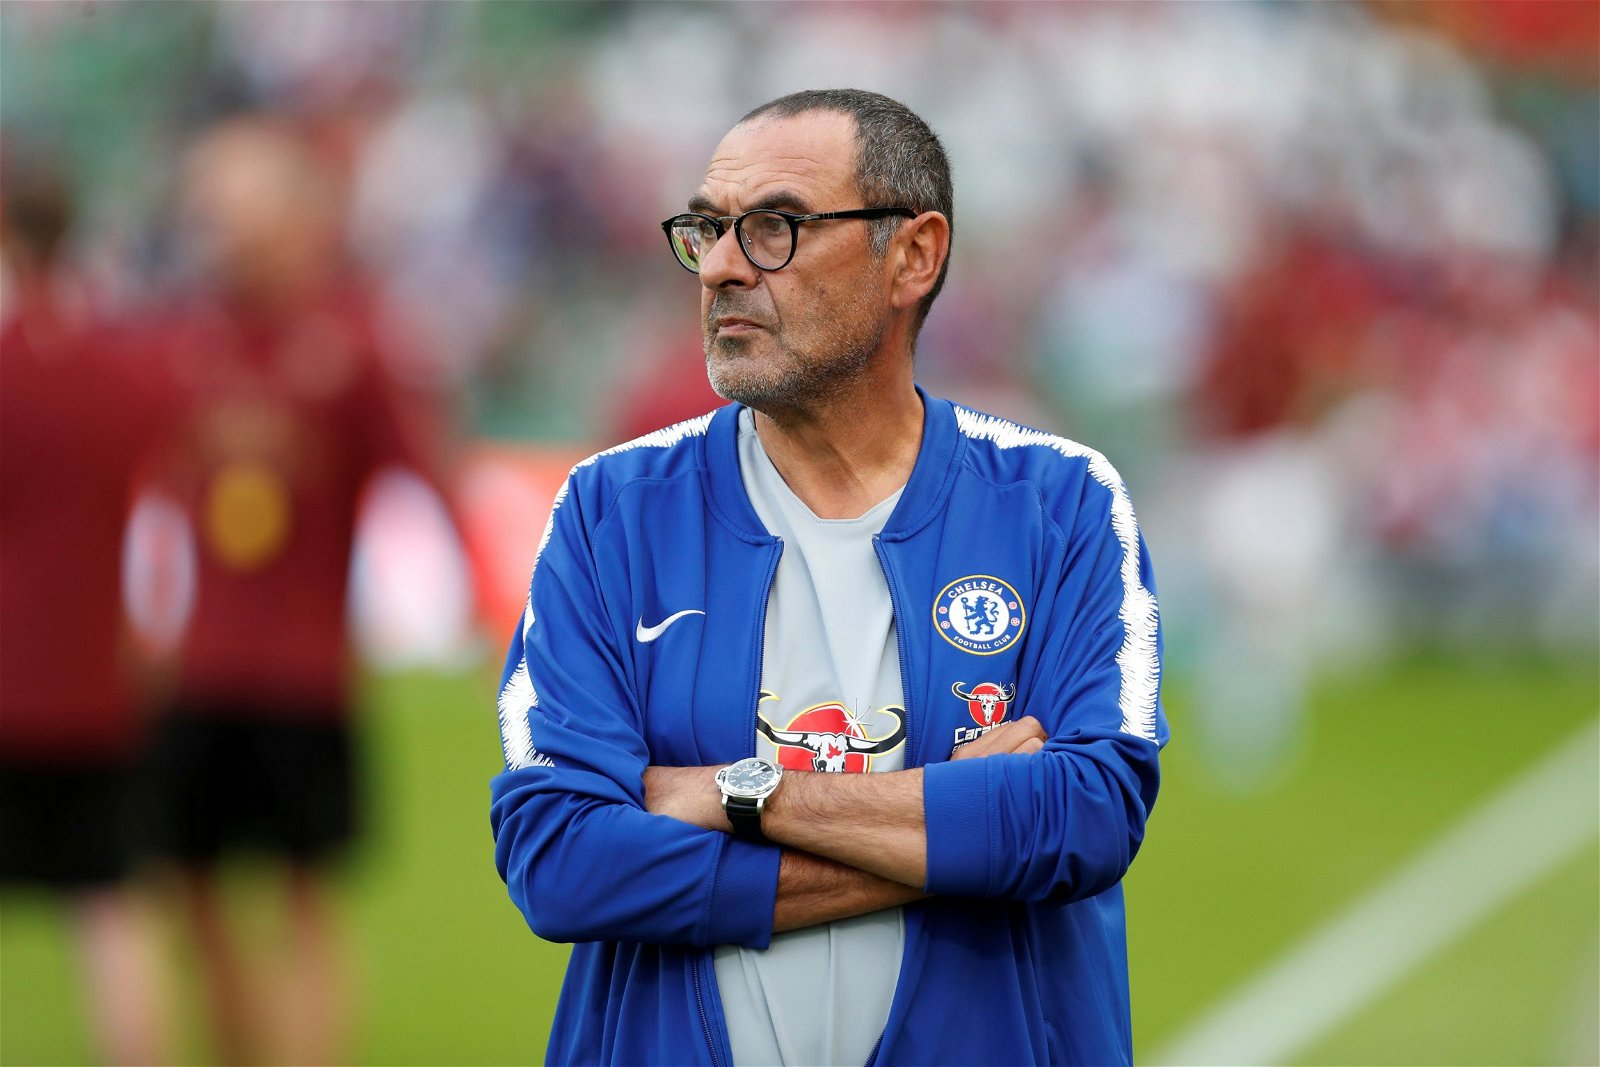 'Lovable Loser' Maurizio Sarri is jarring fit for Chelsea